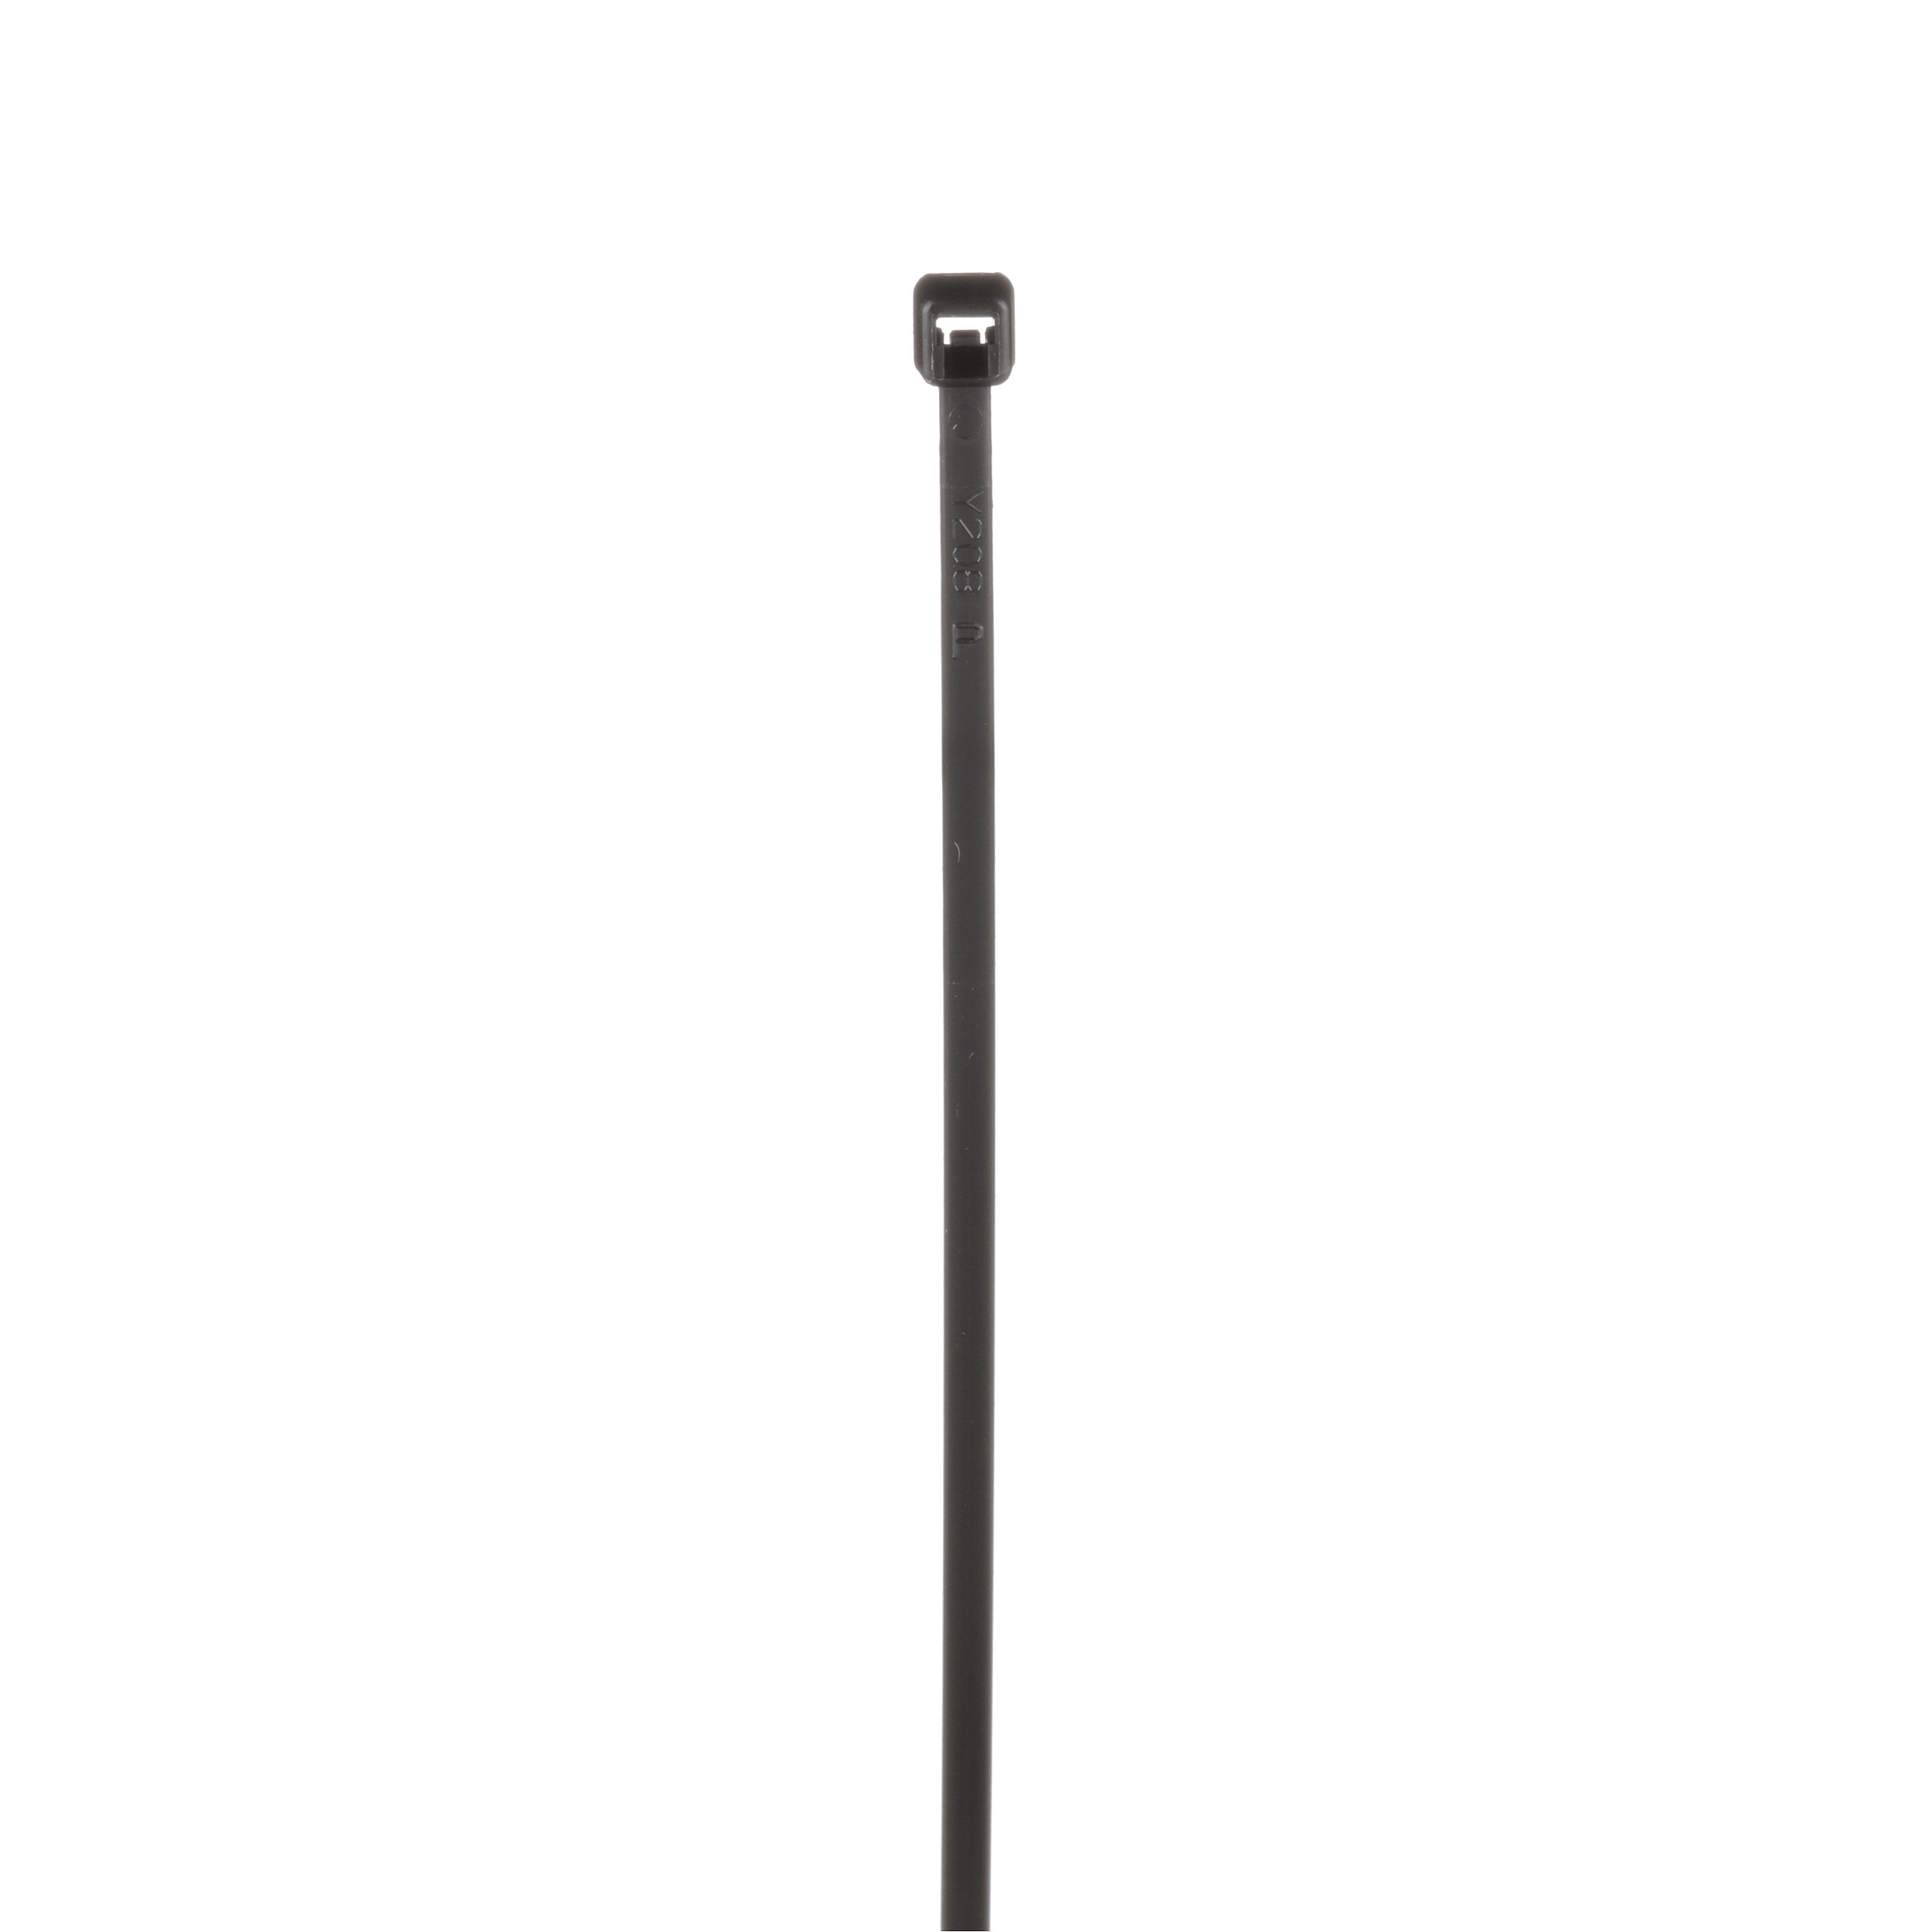 Panduit PLT2M-M20 Cable Tie, Miniature, Nylon 6.6, 8.0-Inch Length, Black (1,000-Pack)